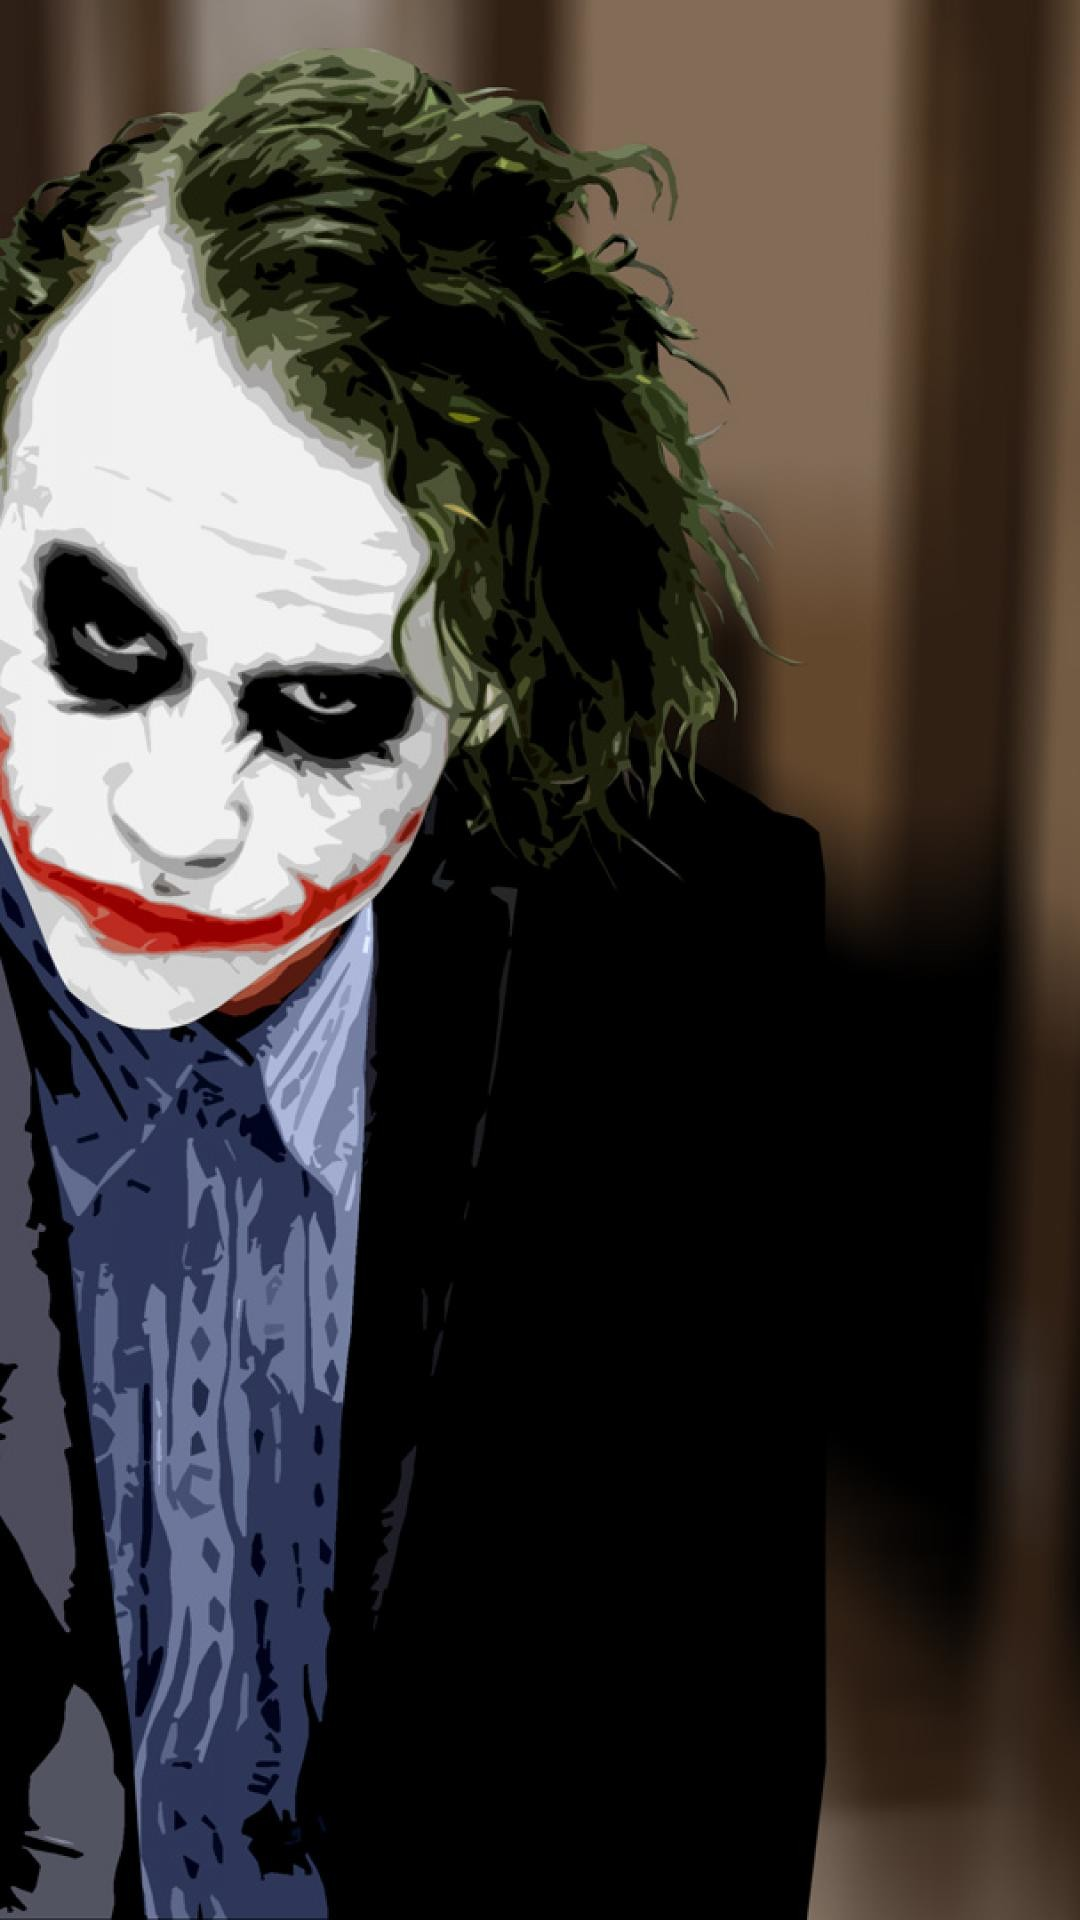 Heath Ledger Hd Wallpapers Heath Ledger Images Hd 63911 Hd Wallpaper Backgrounds Download